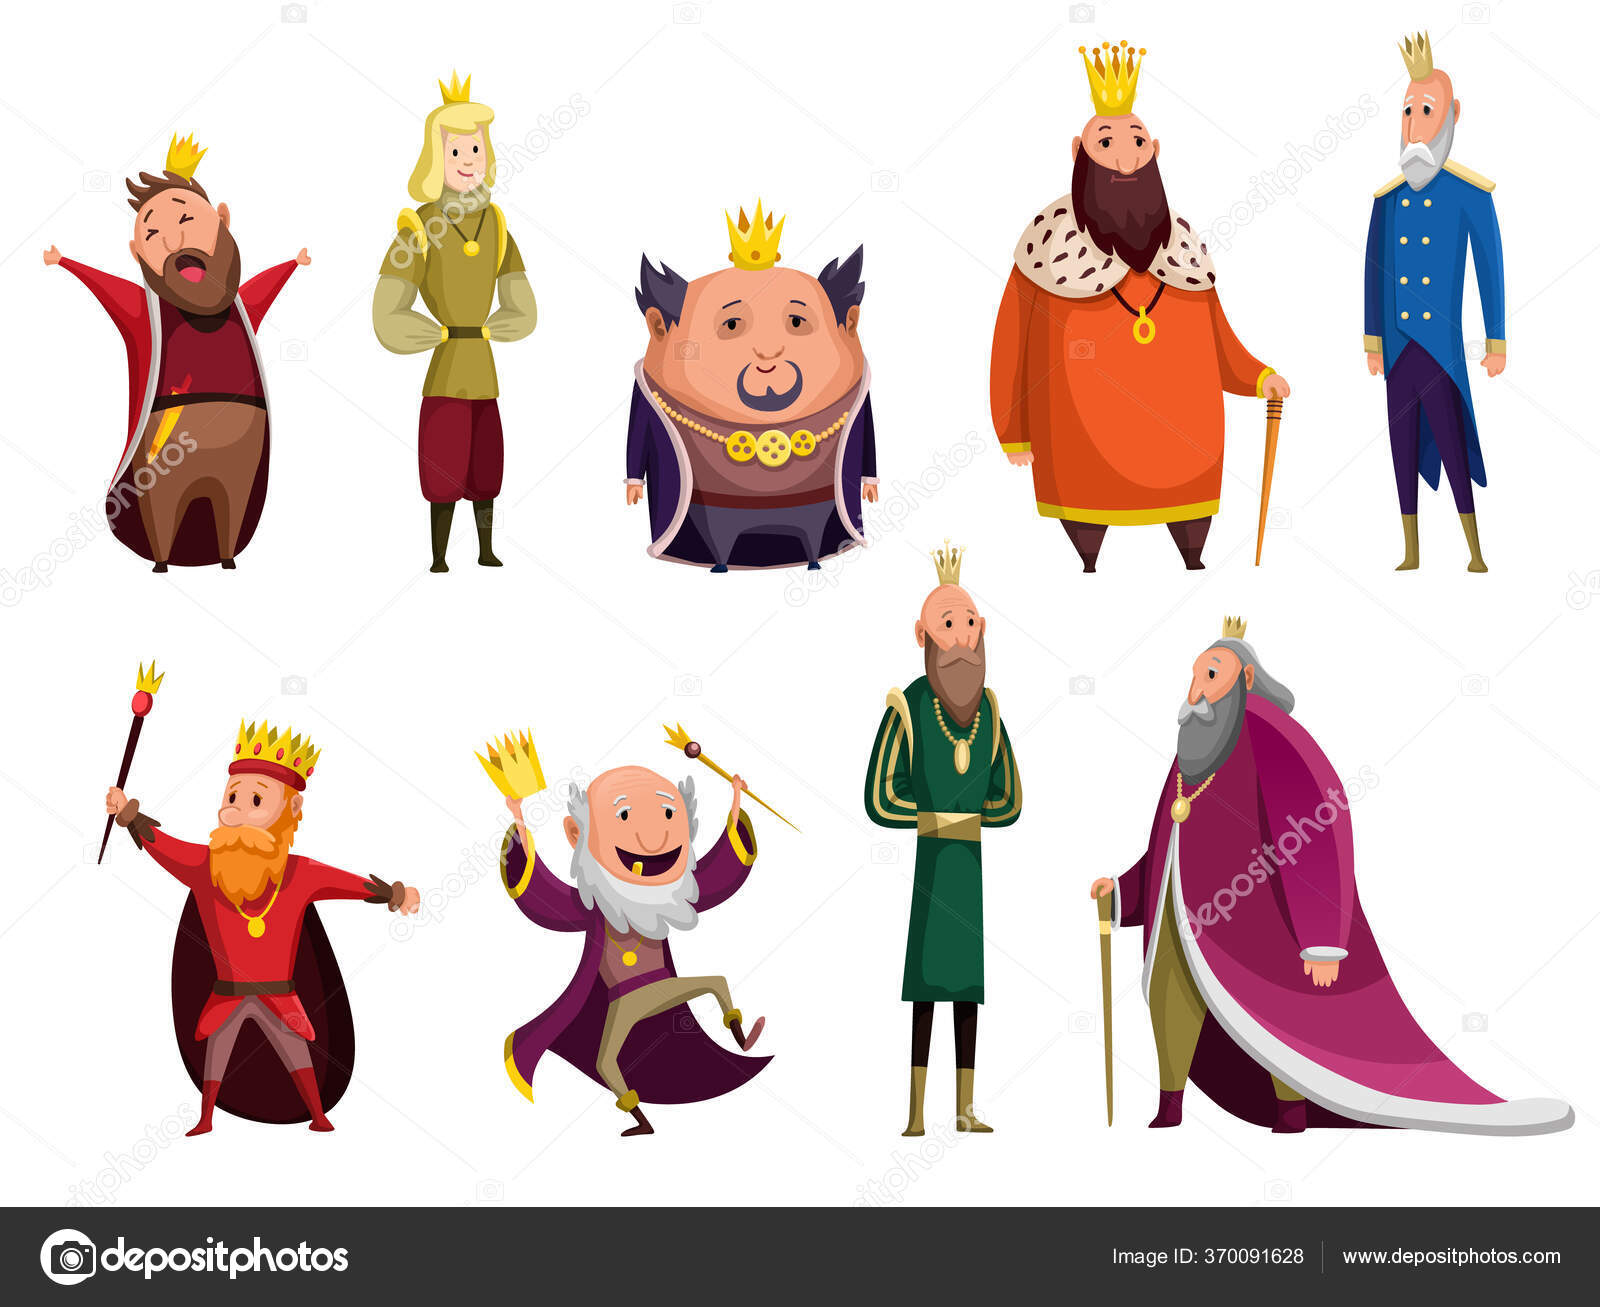 Áˆ Crown Stock Animated Royalty Free Cartoon Person Wearing Crown Vectors Download On Depositphotos Cartoon king wearing crown and mantle. https depositphotos com 370091628 stock illustration set of cartoon kings wearing html